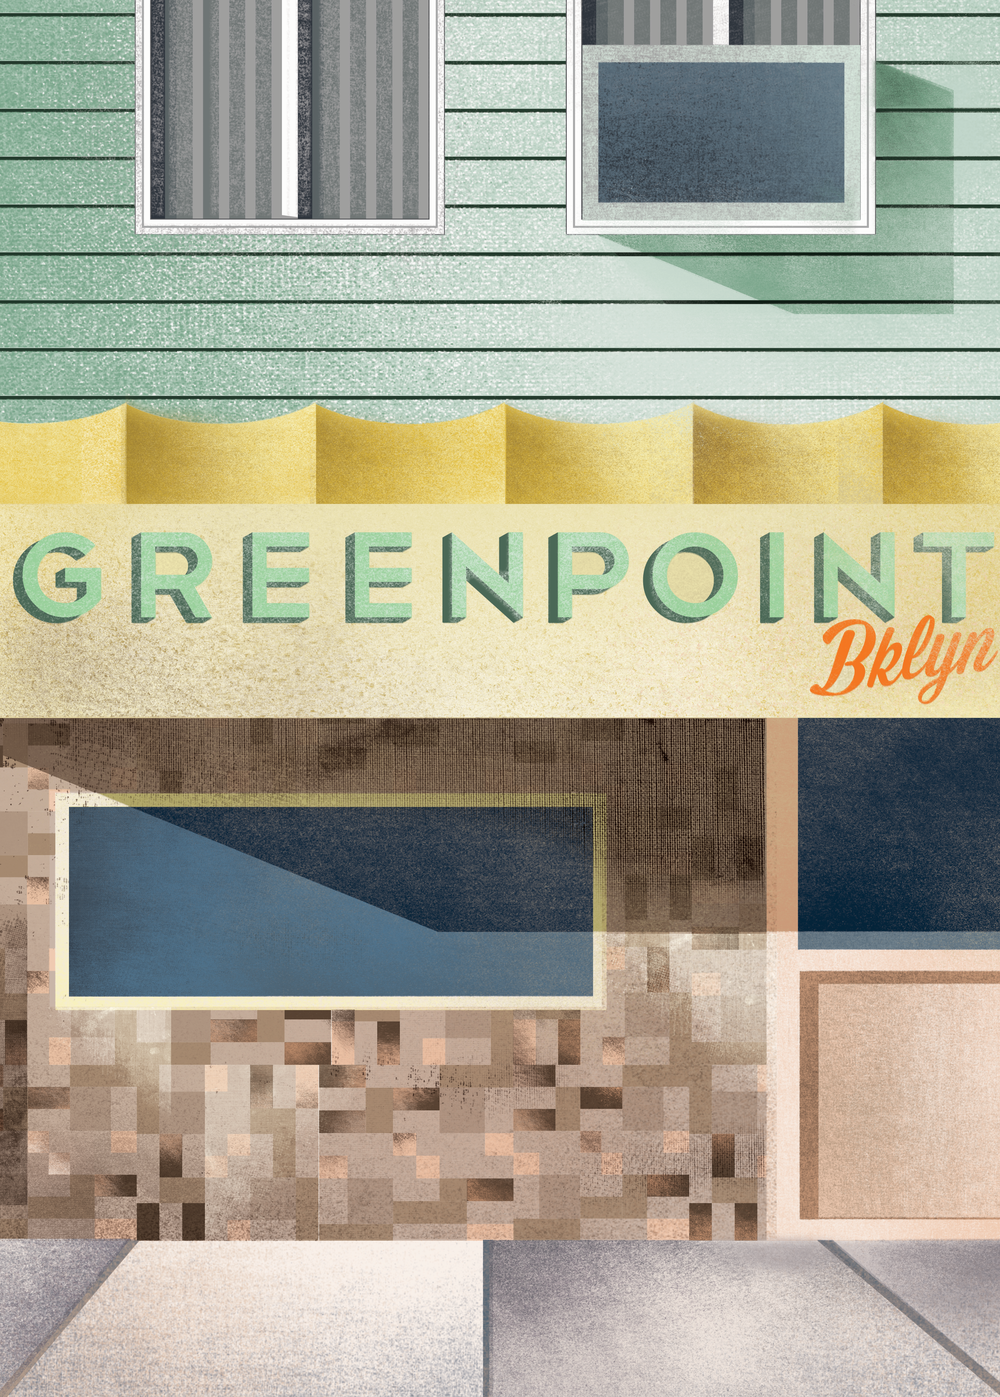 Greenpoint.png